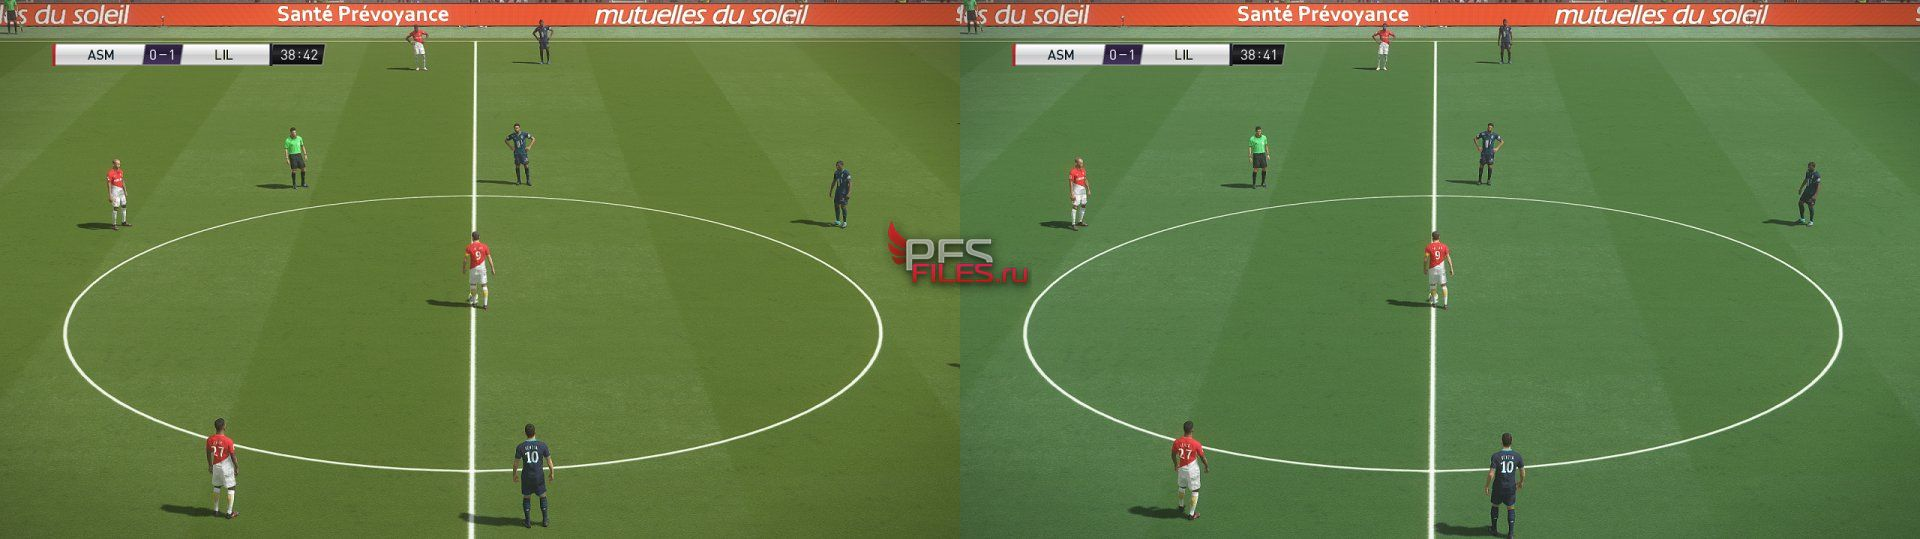 Pes 2018 Color correction v2